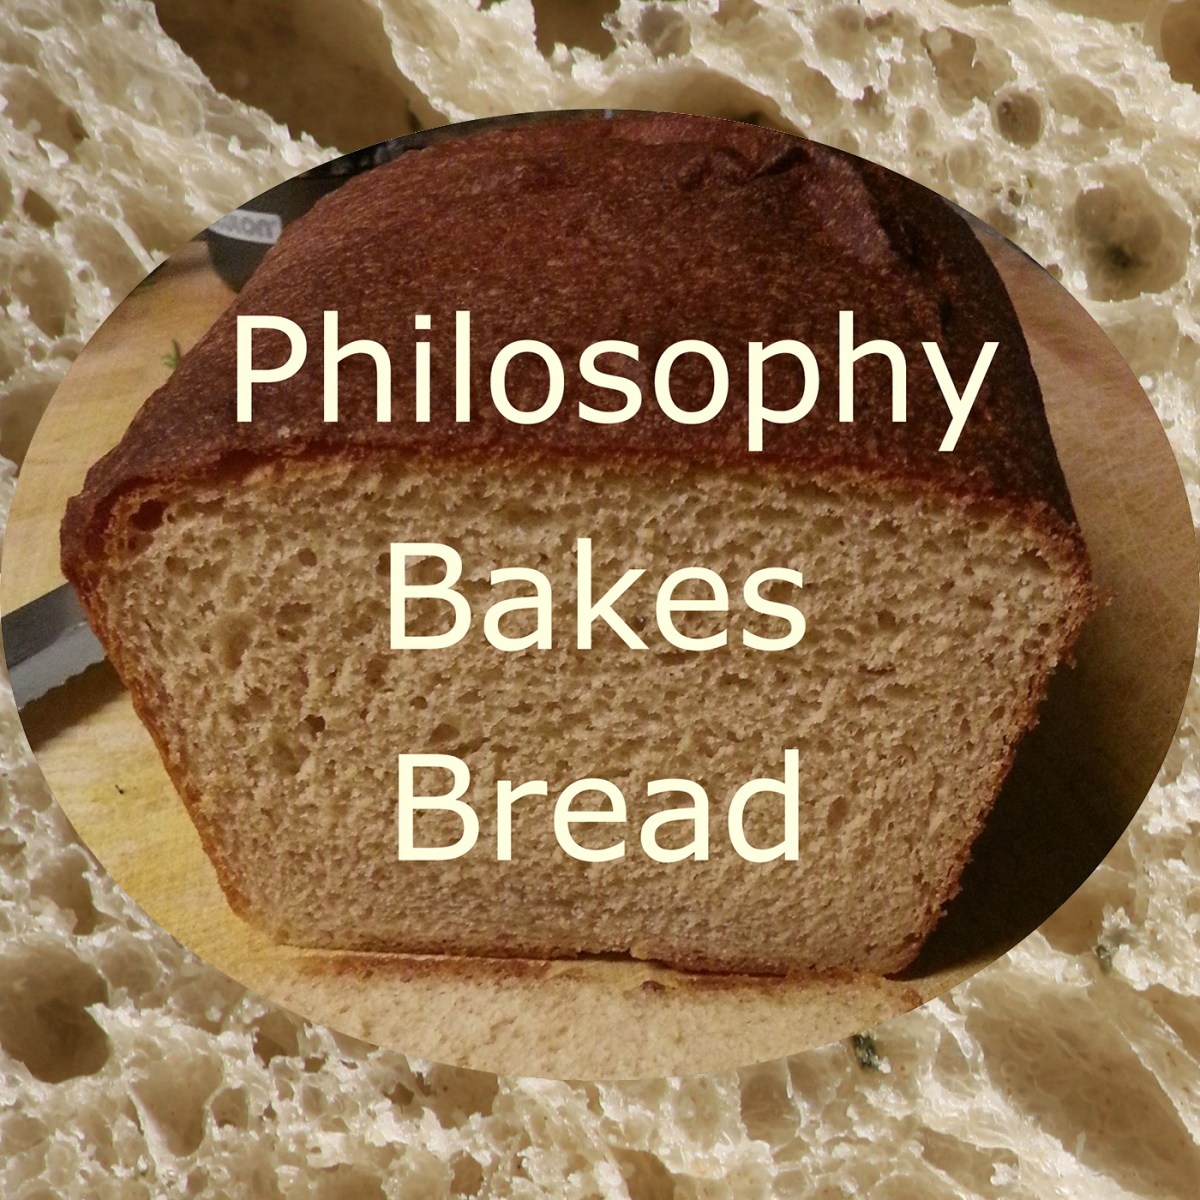 A logo for Philosophy Bakes Bread.